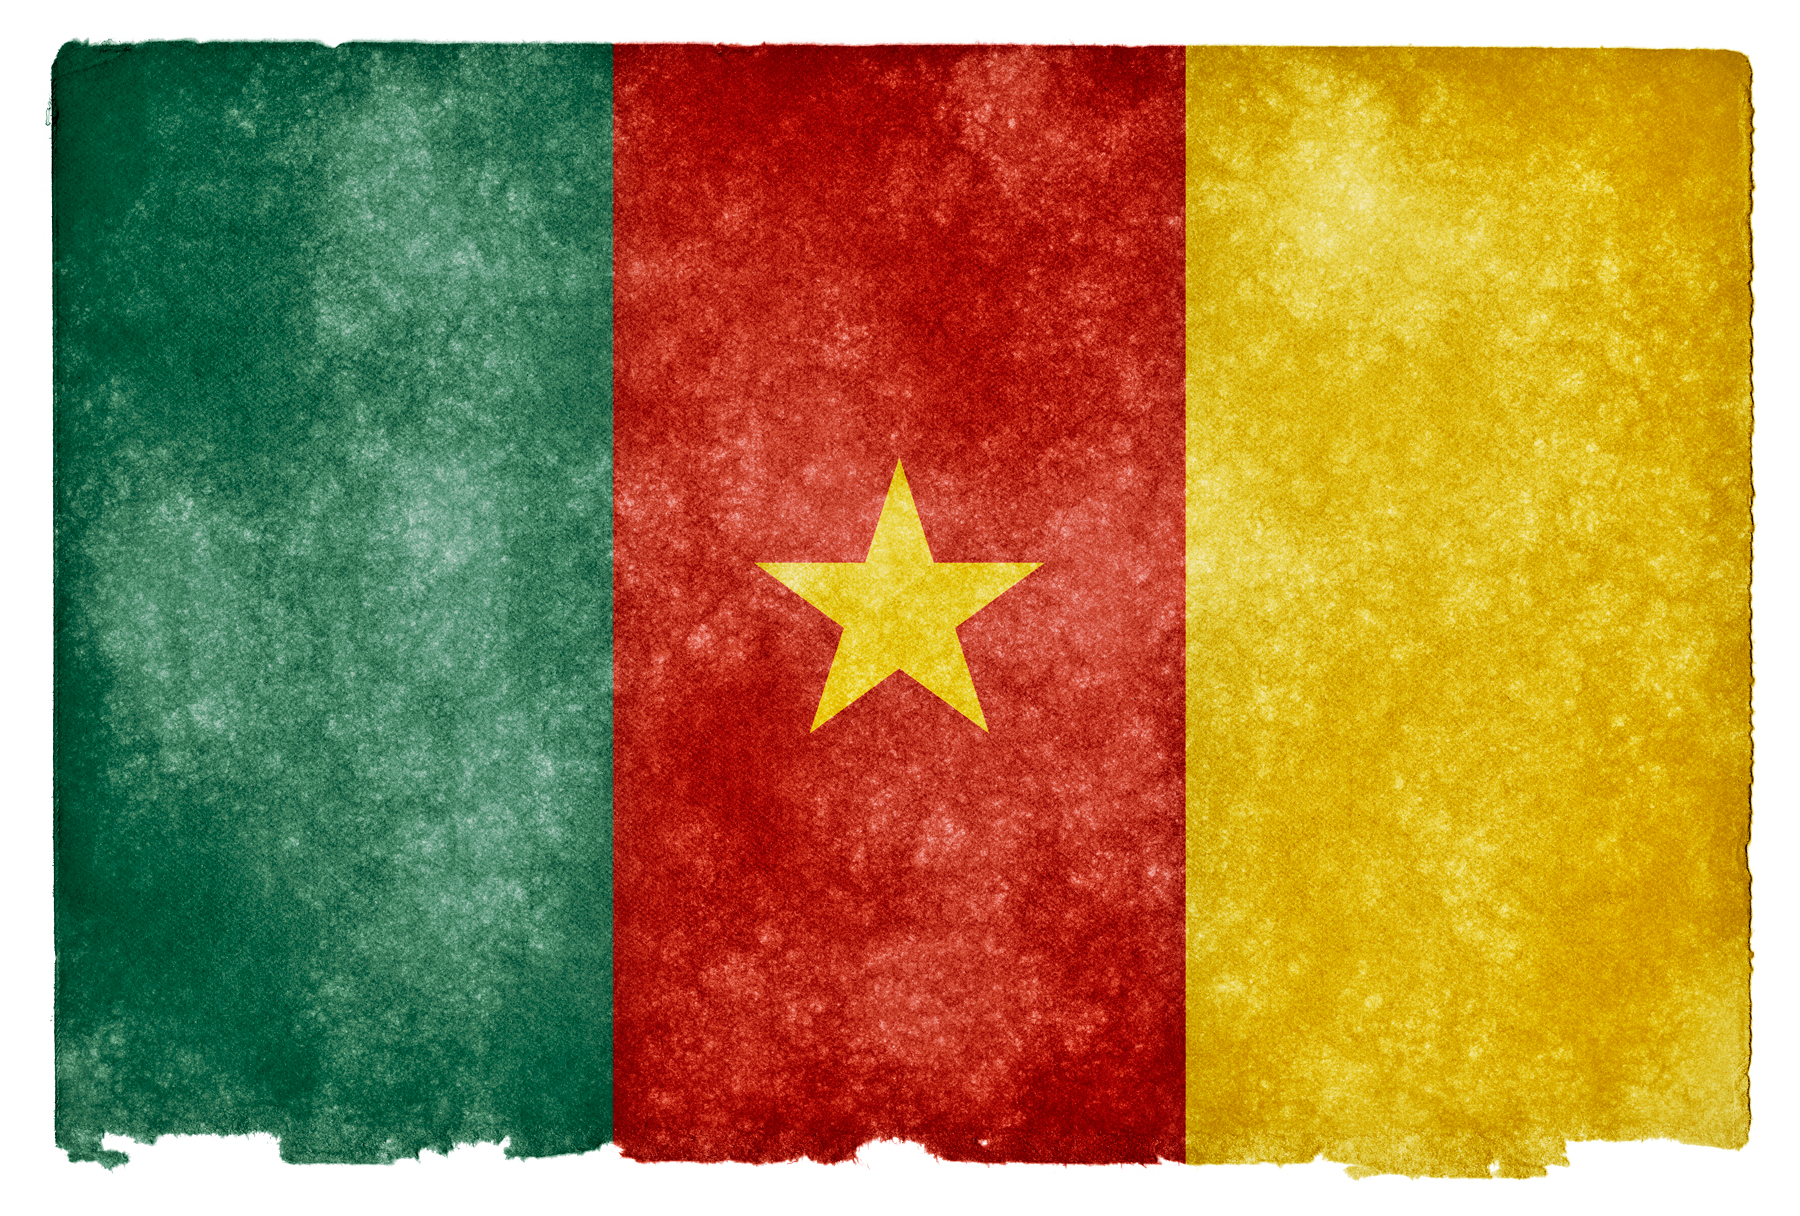 Cameroon Grunge Flag, Africa, Retro, Page, Paper, HQ Photo